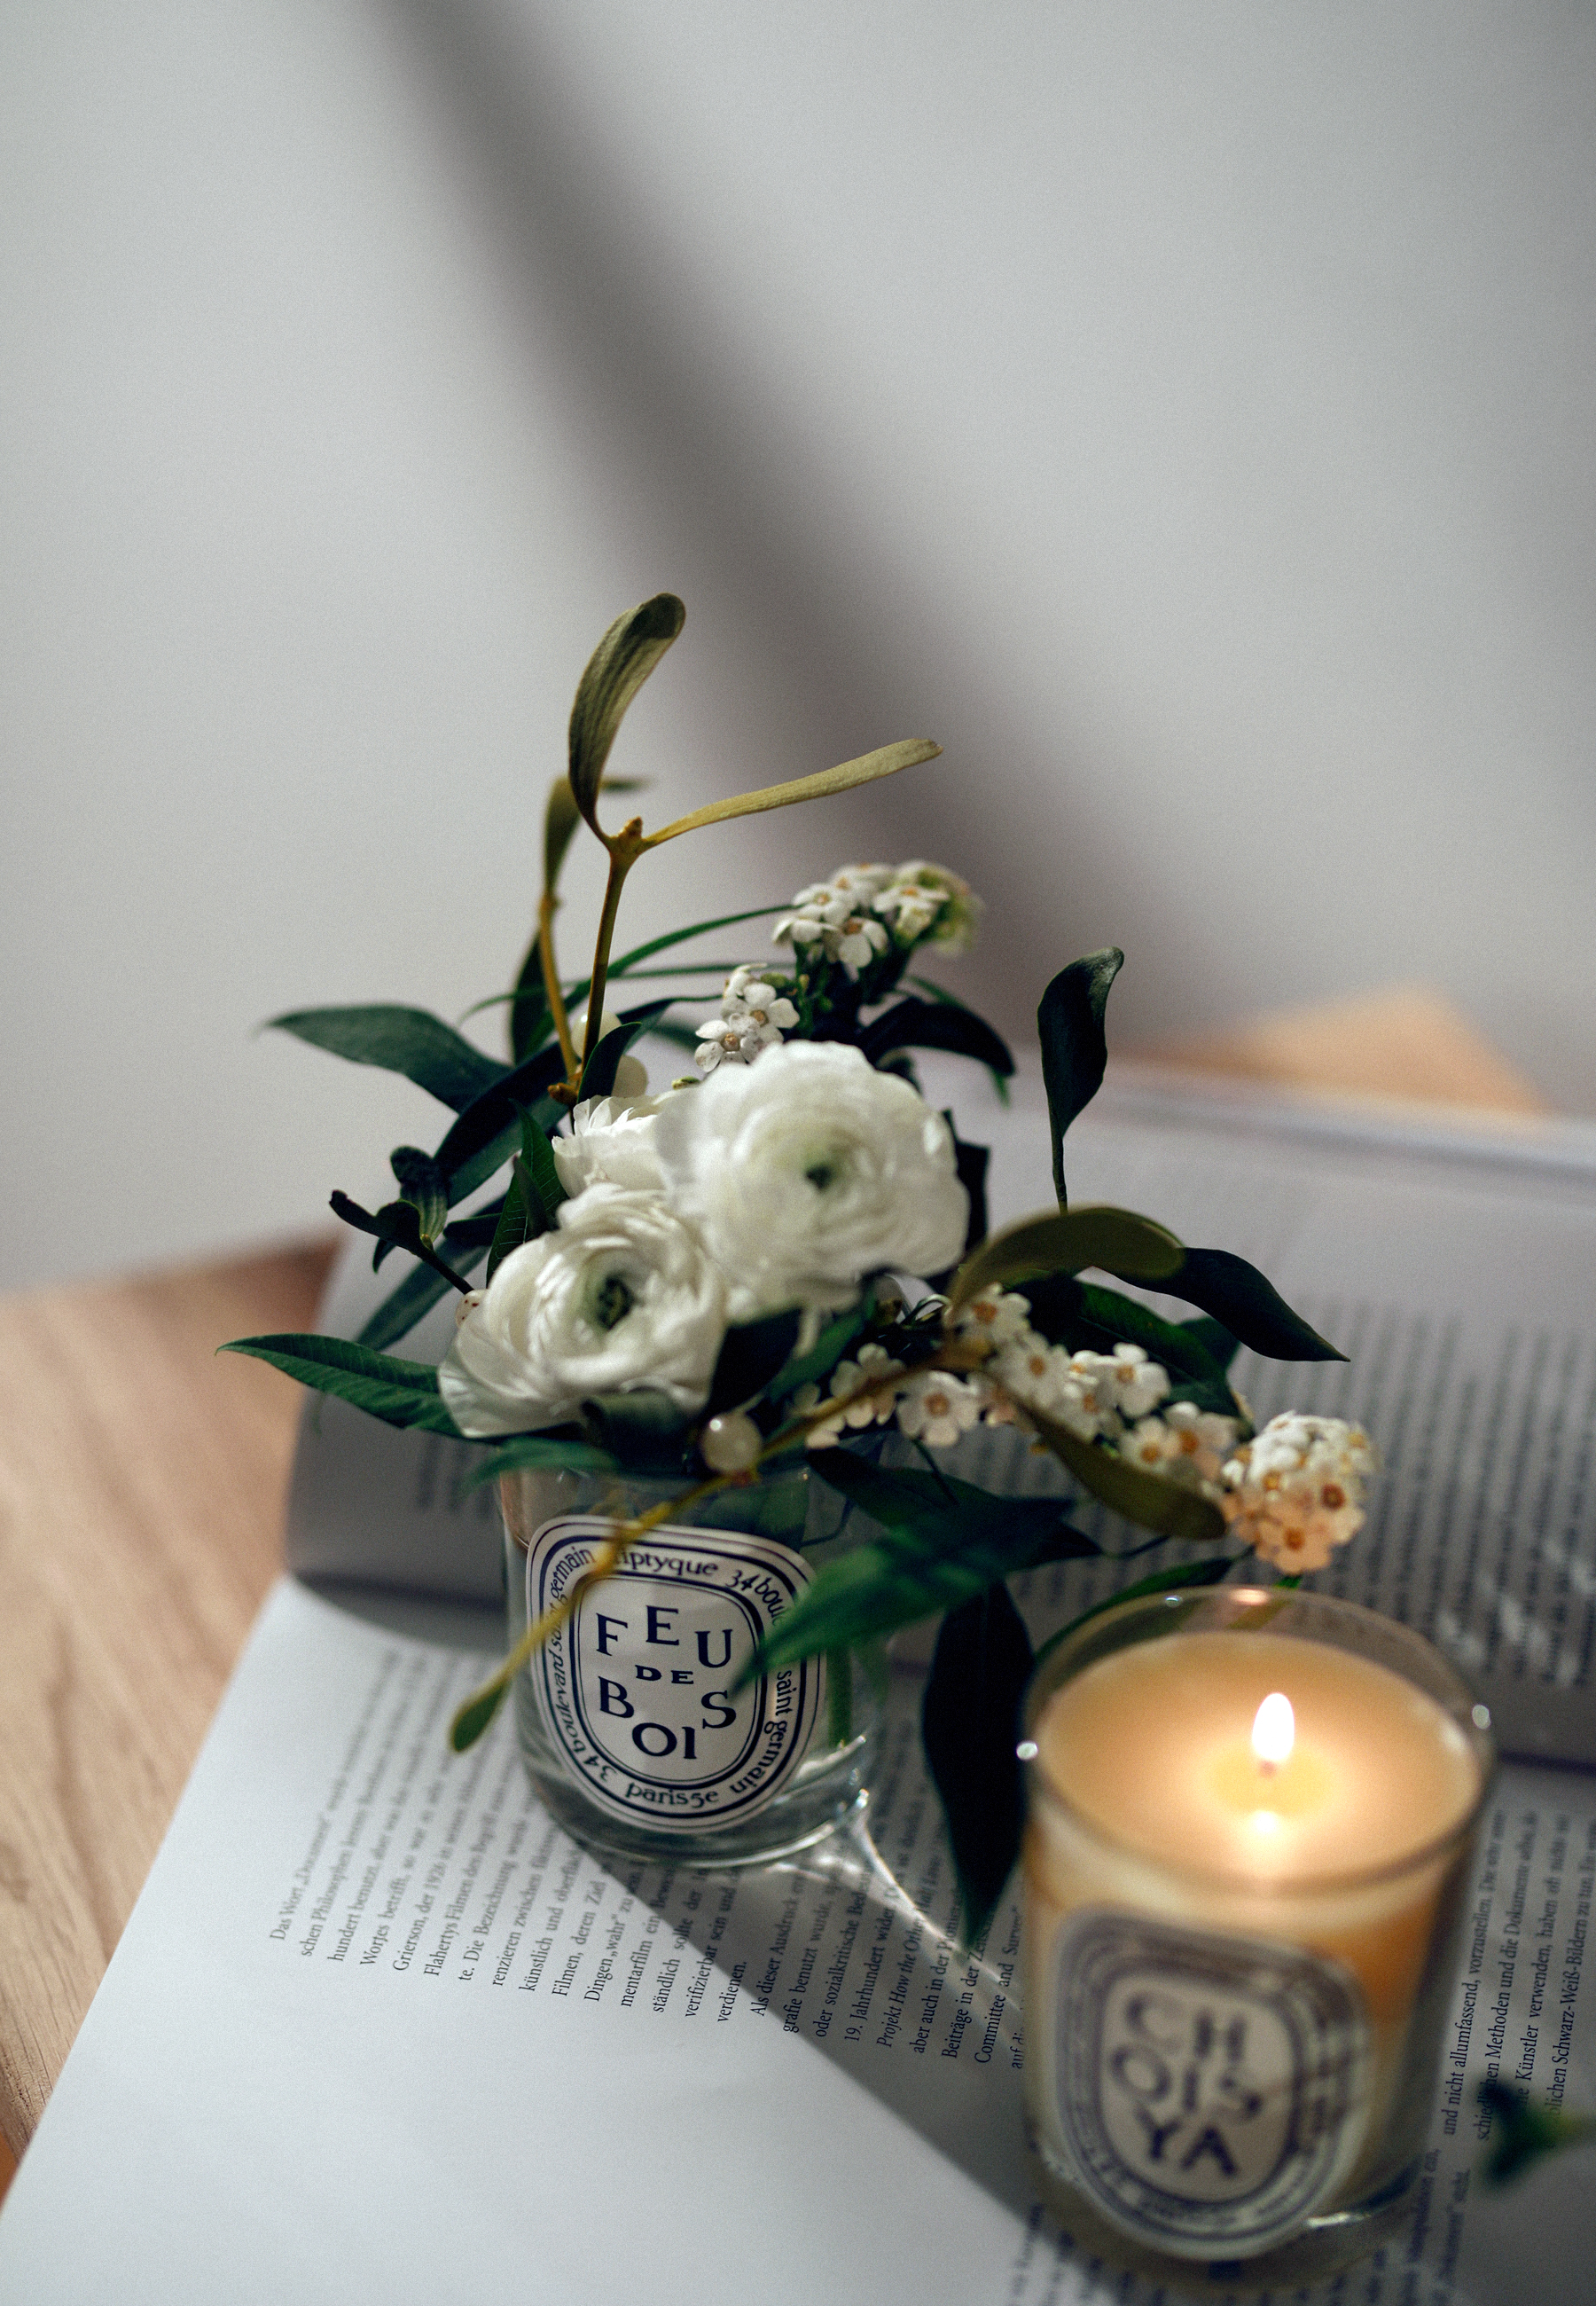 diptyque advent christmas decor white flowers floral decor floristik gesteck winter home and living interior design flowerdesign bloom cats & dogs lifestyle beauty fashion blogger modeblog fashionblog hund und katze ricarda schernus max bechman fotograf 5